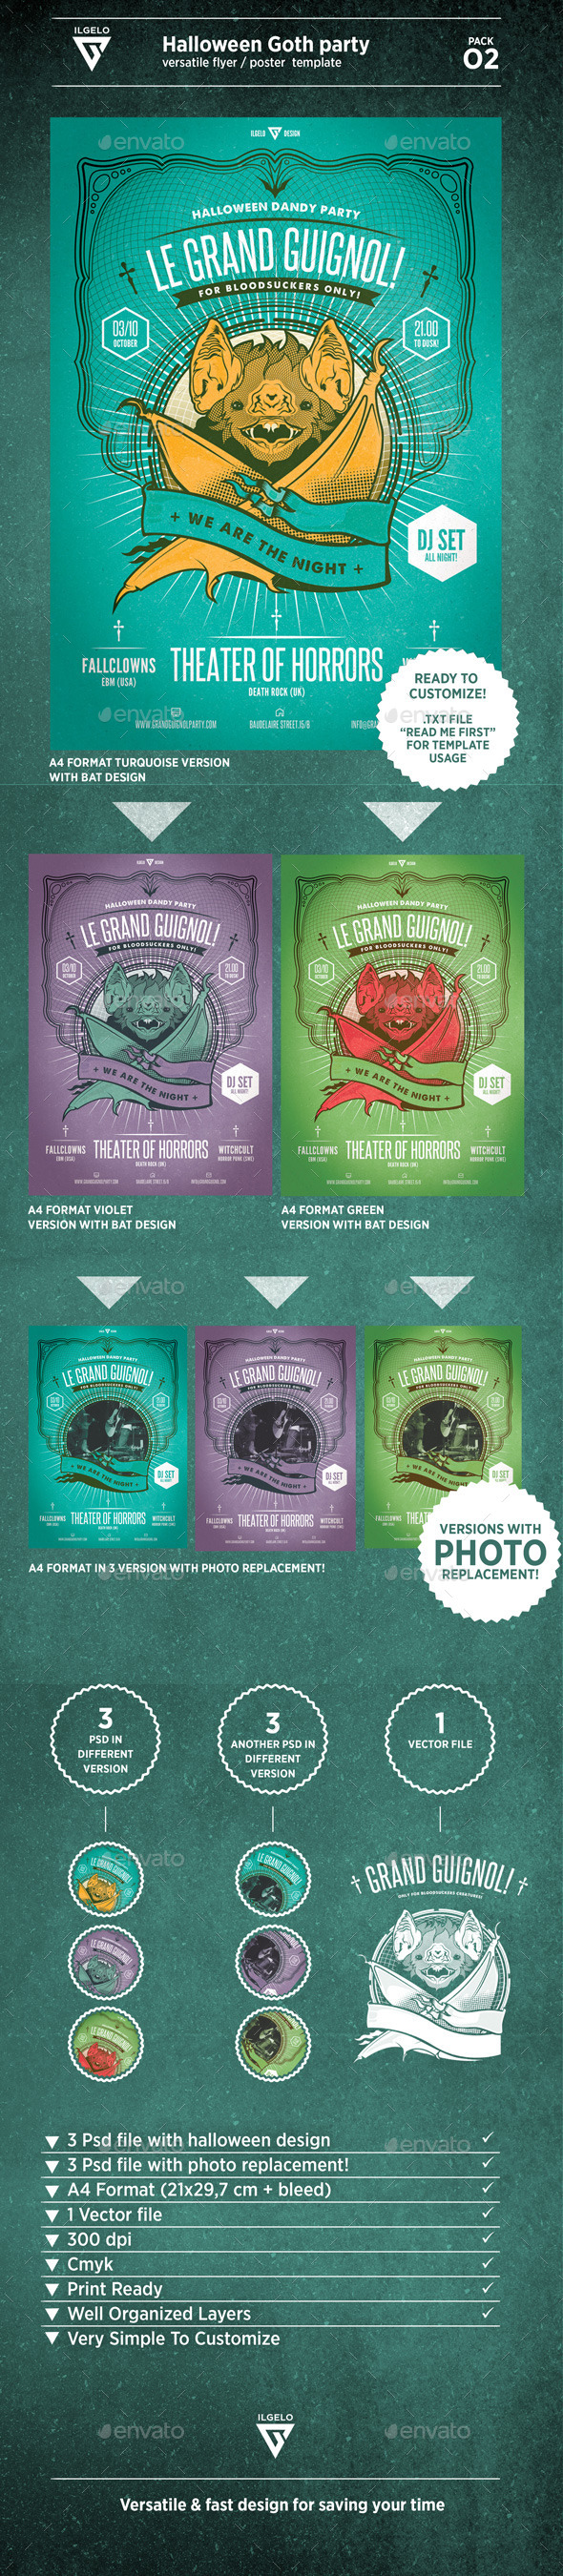 GraphicRiver Halloween Goth Party Poster Pack.02 9008375